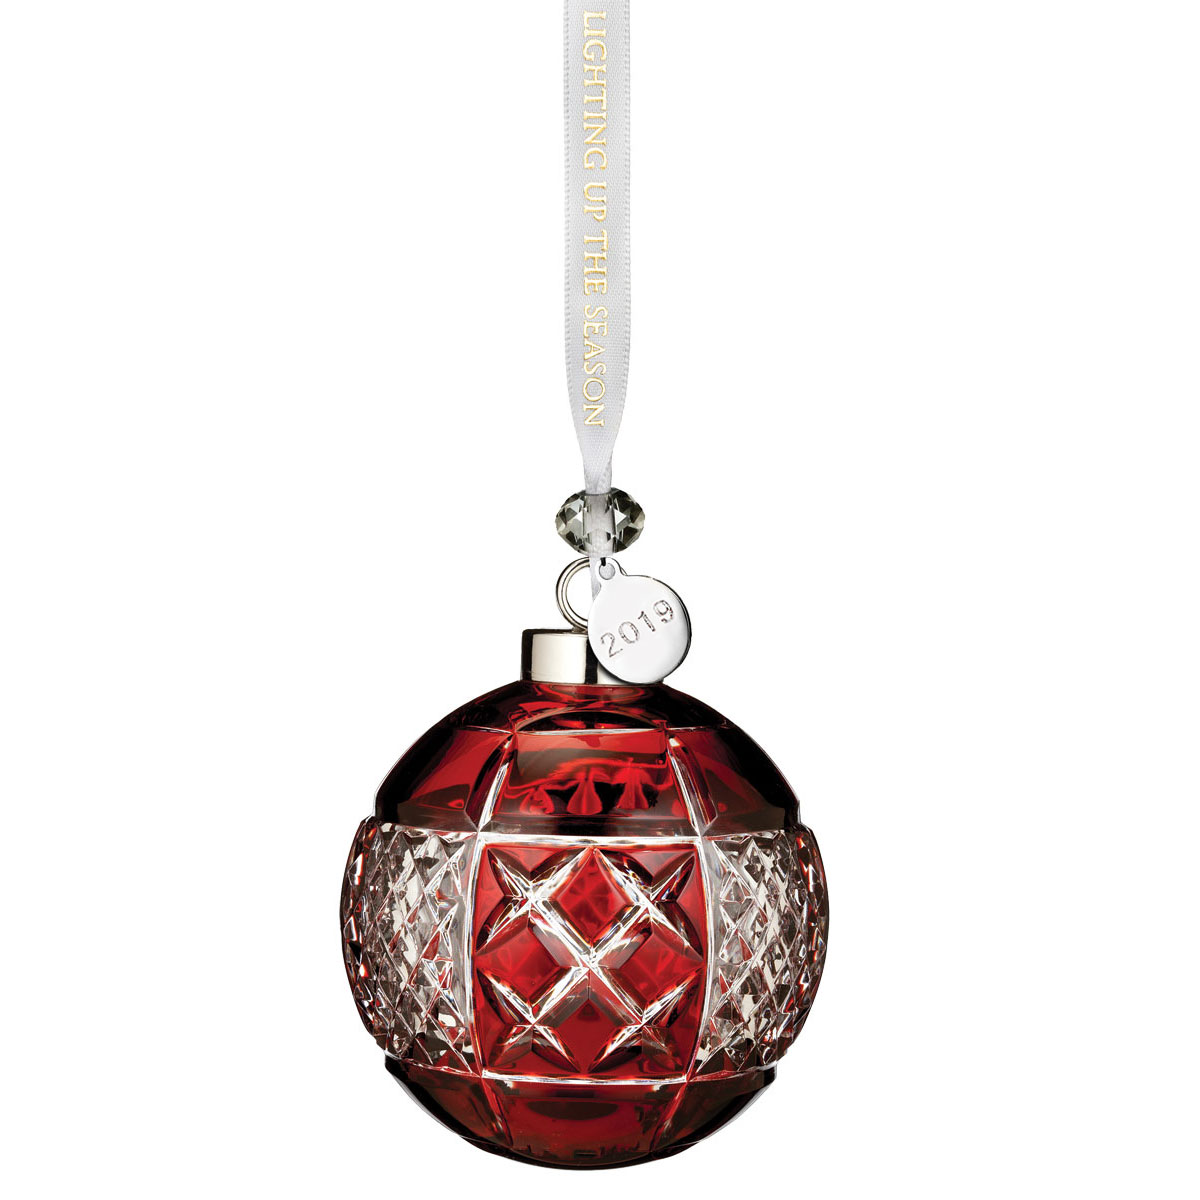 Waterford Crystal Christmas Ornaments.Waterford Crystal 2019 Red Ball Ornament